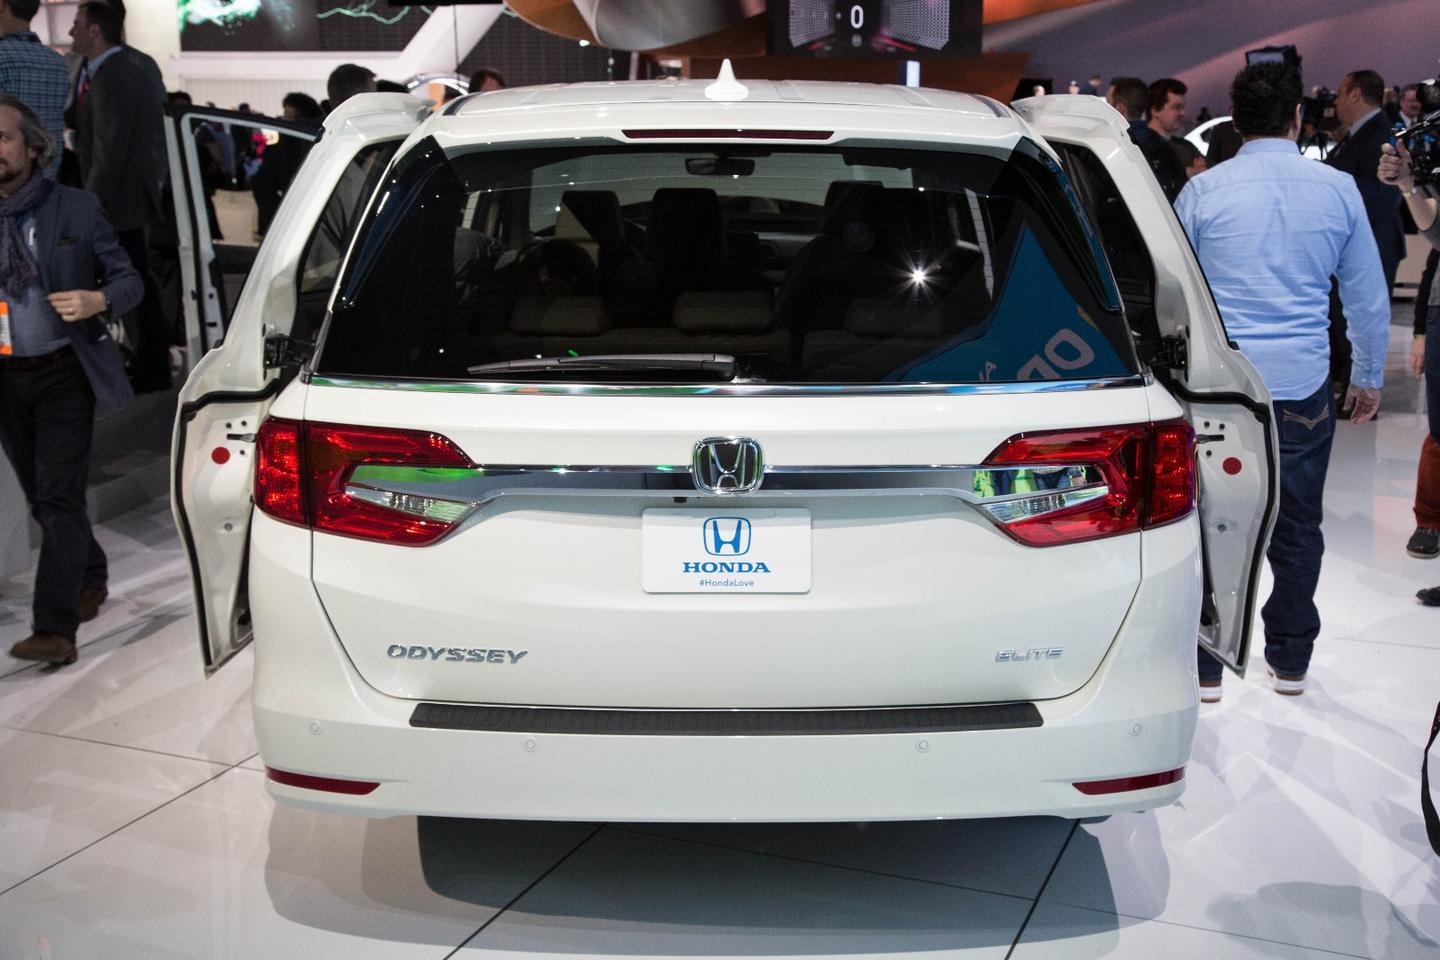 The 2018 Honda Odyssey from the rear showsLED taillights and an available new hands-free power tailgate with foot activation